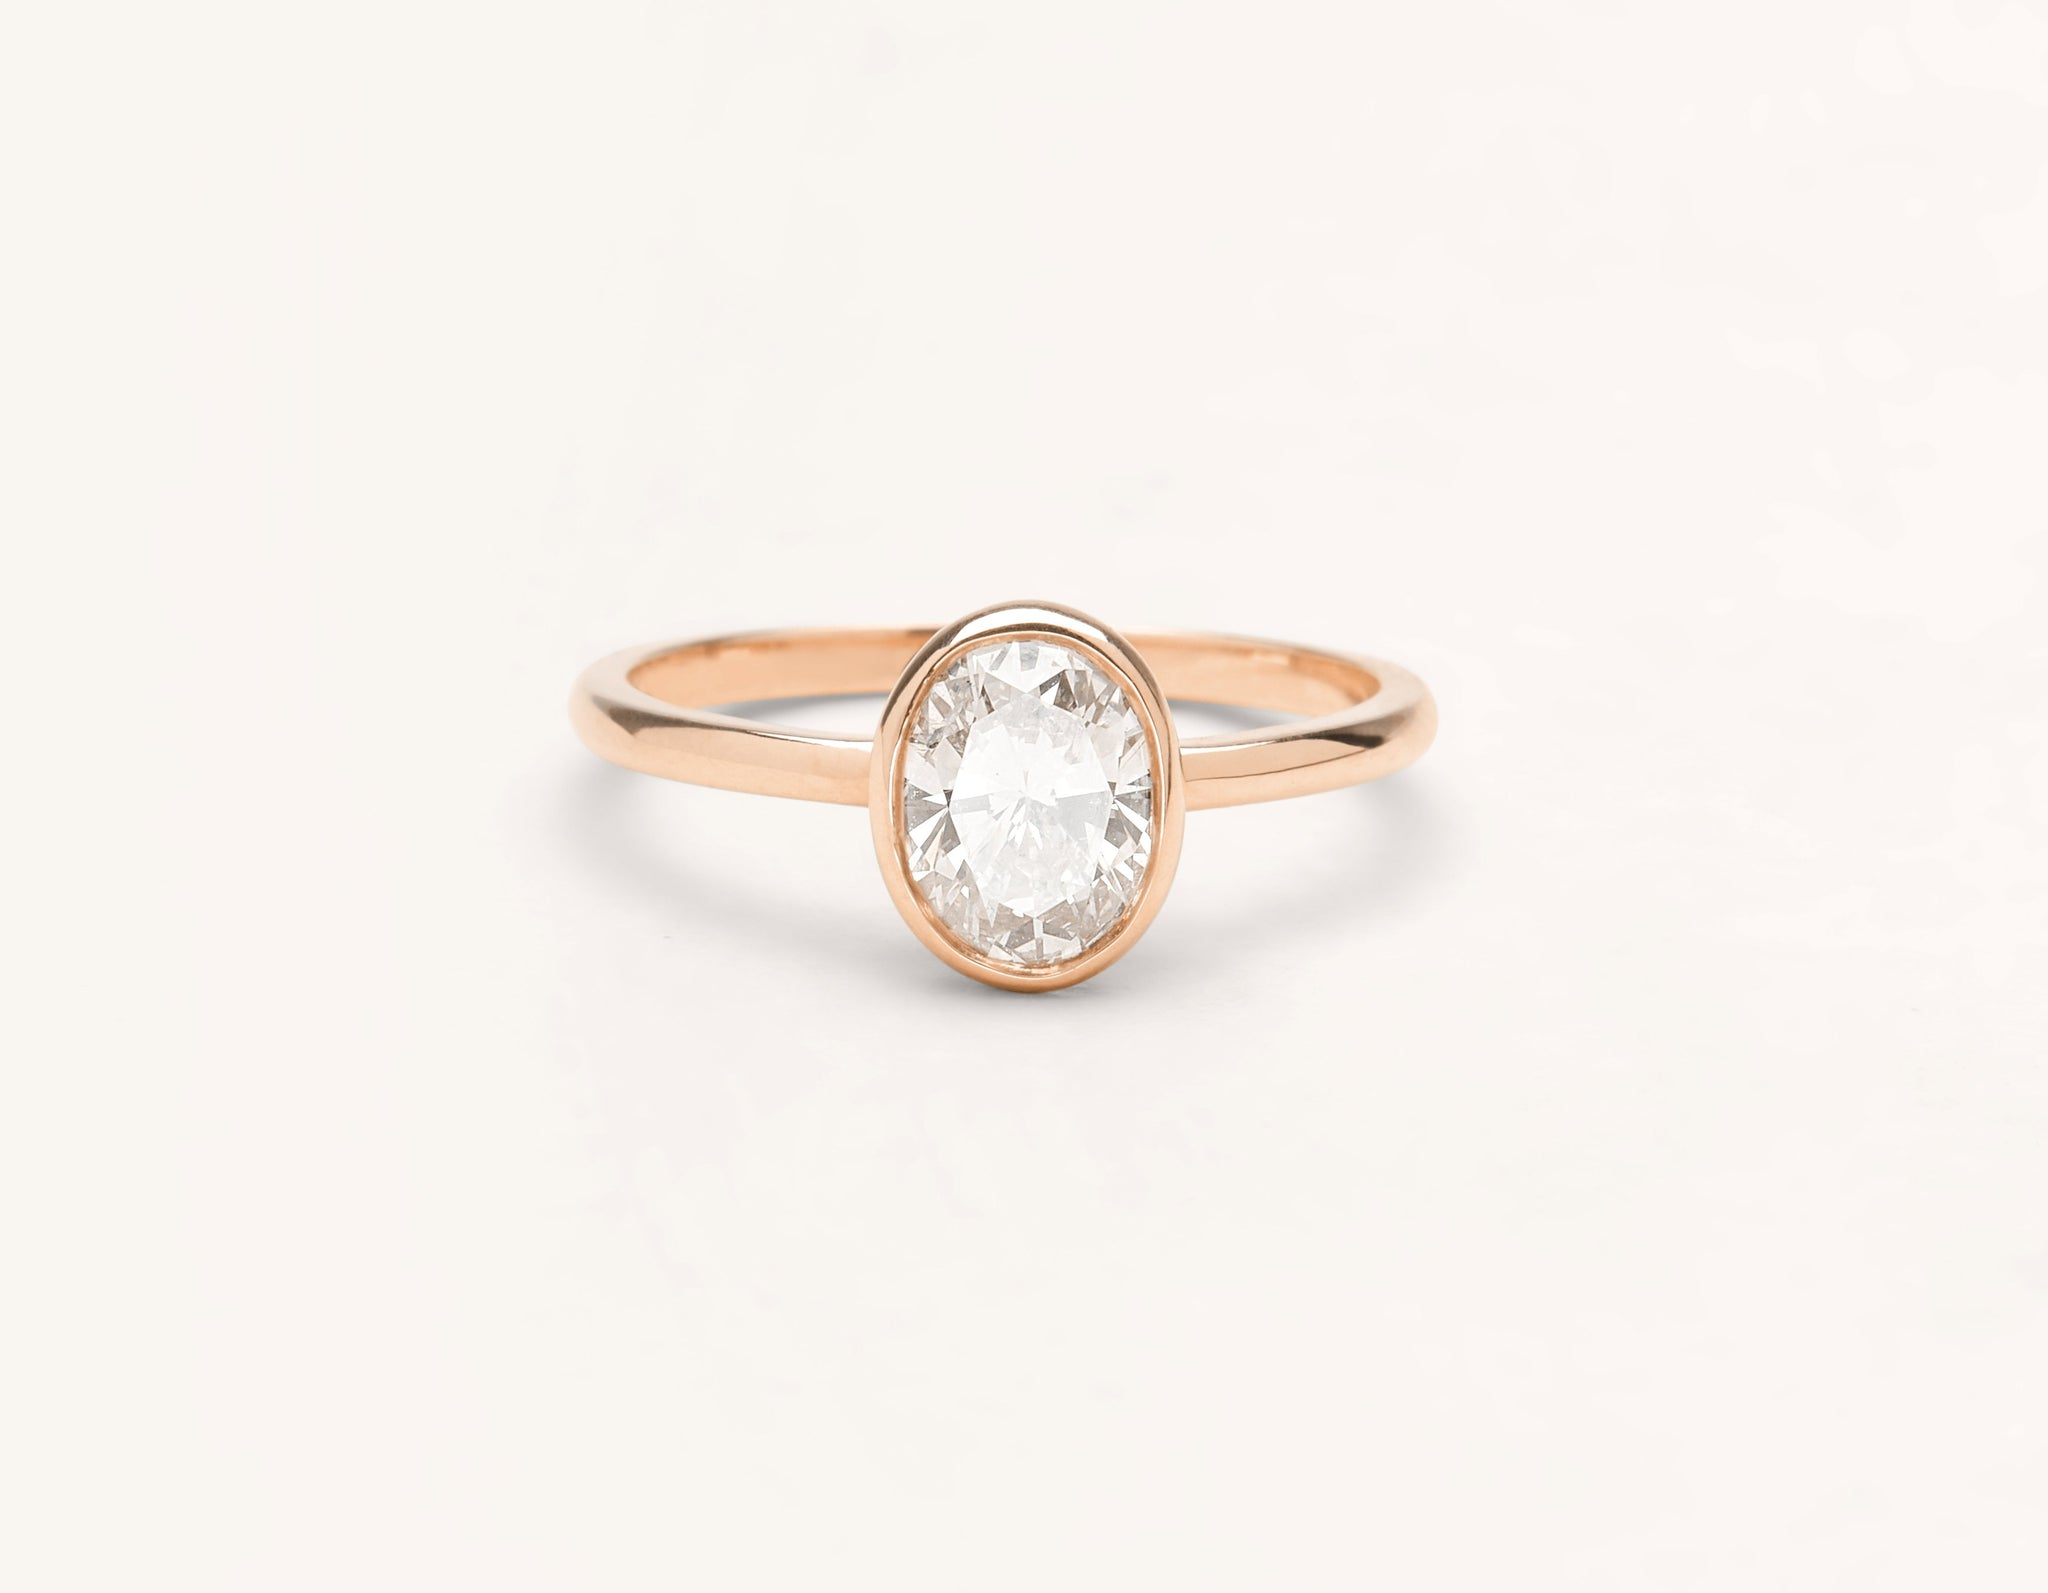 Minimalist 18k solid rose gold Oval Bezel engagement ring 1 ct diamond Vrai and Oro